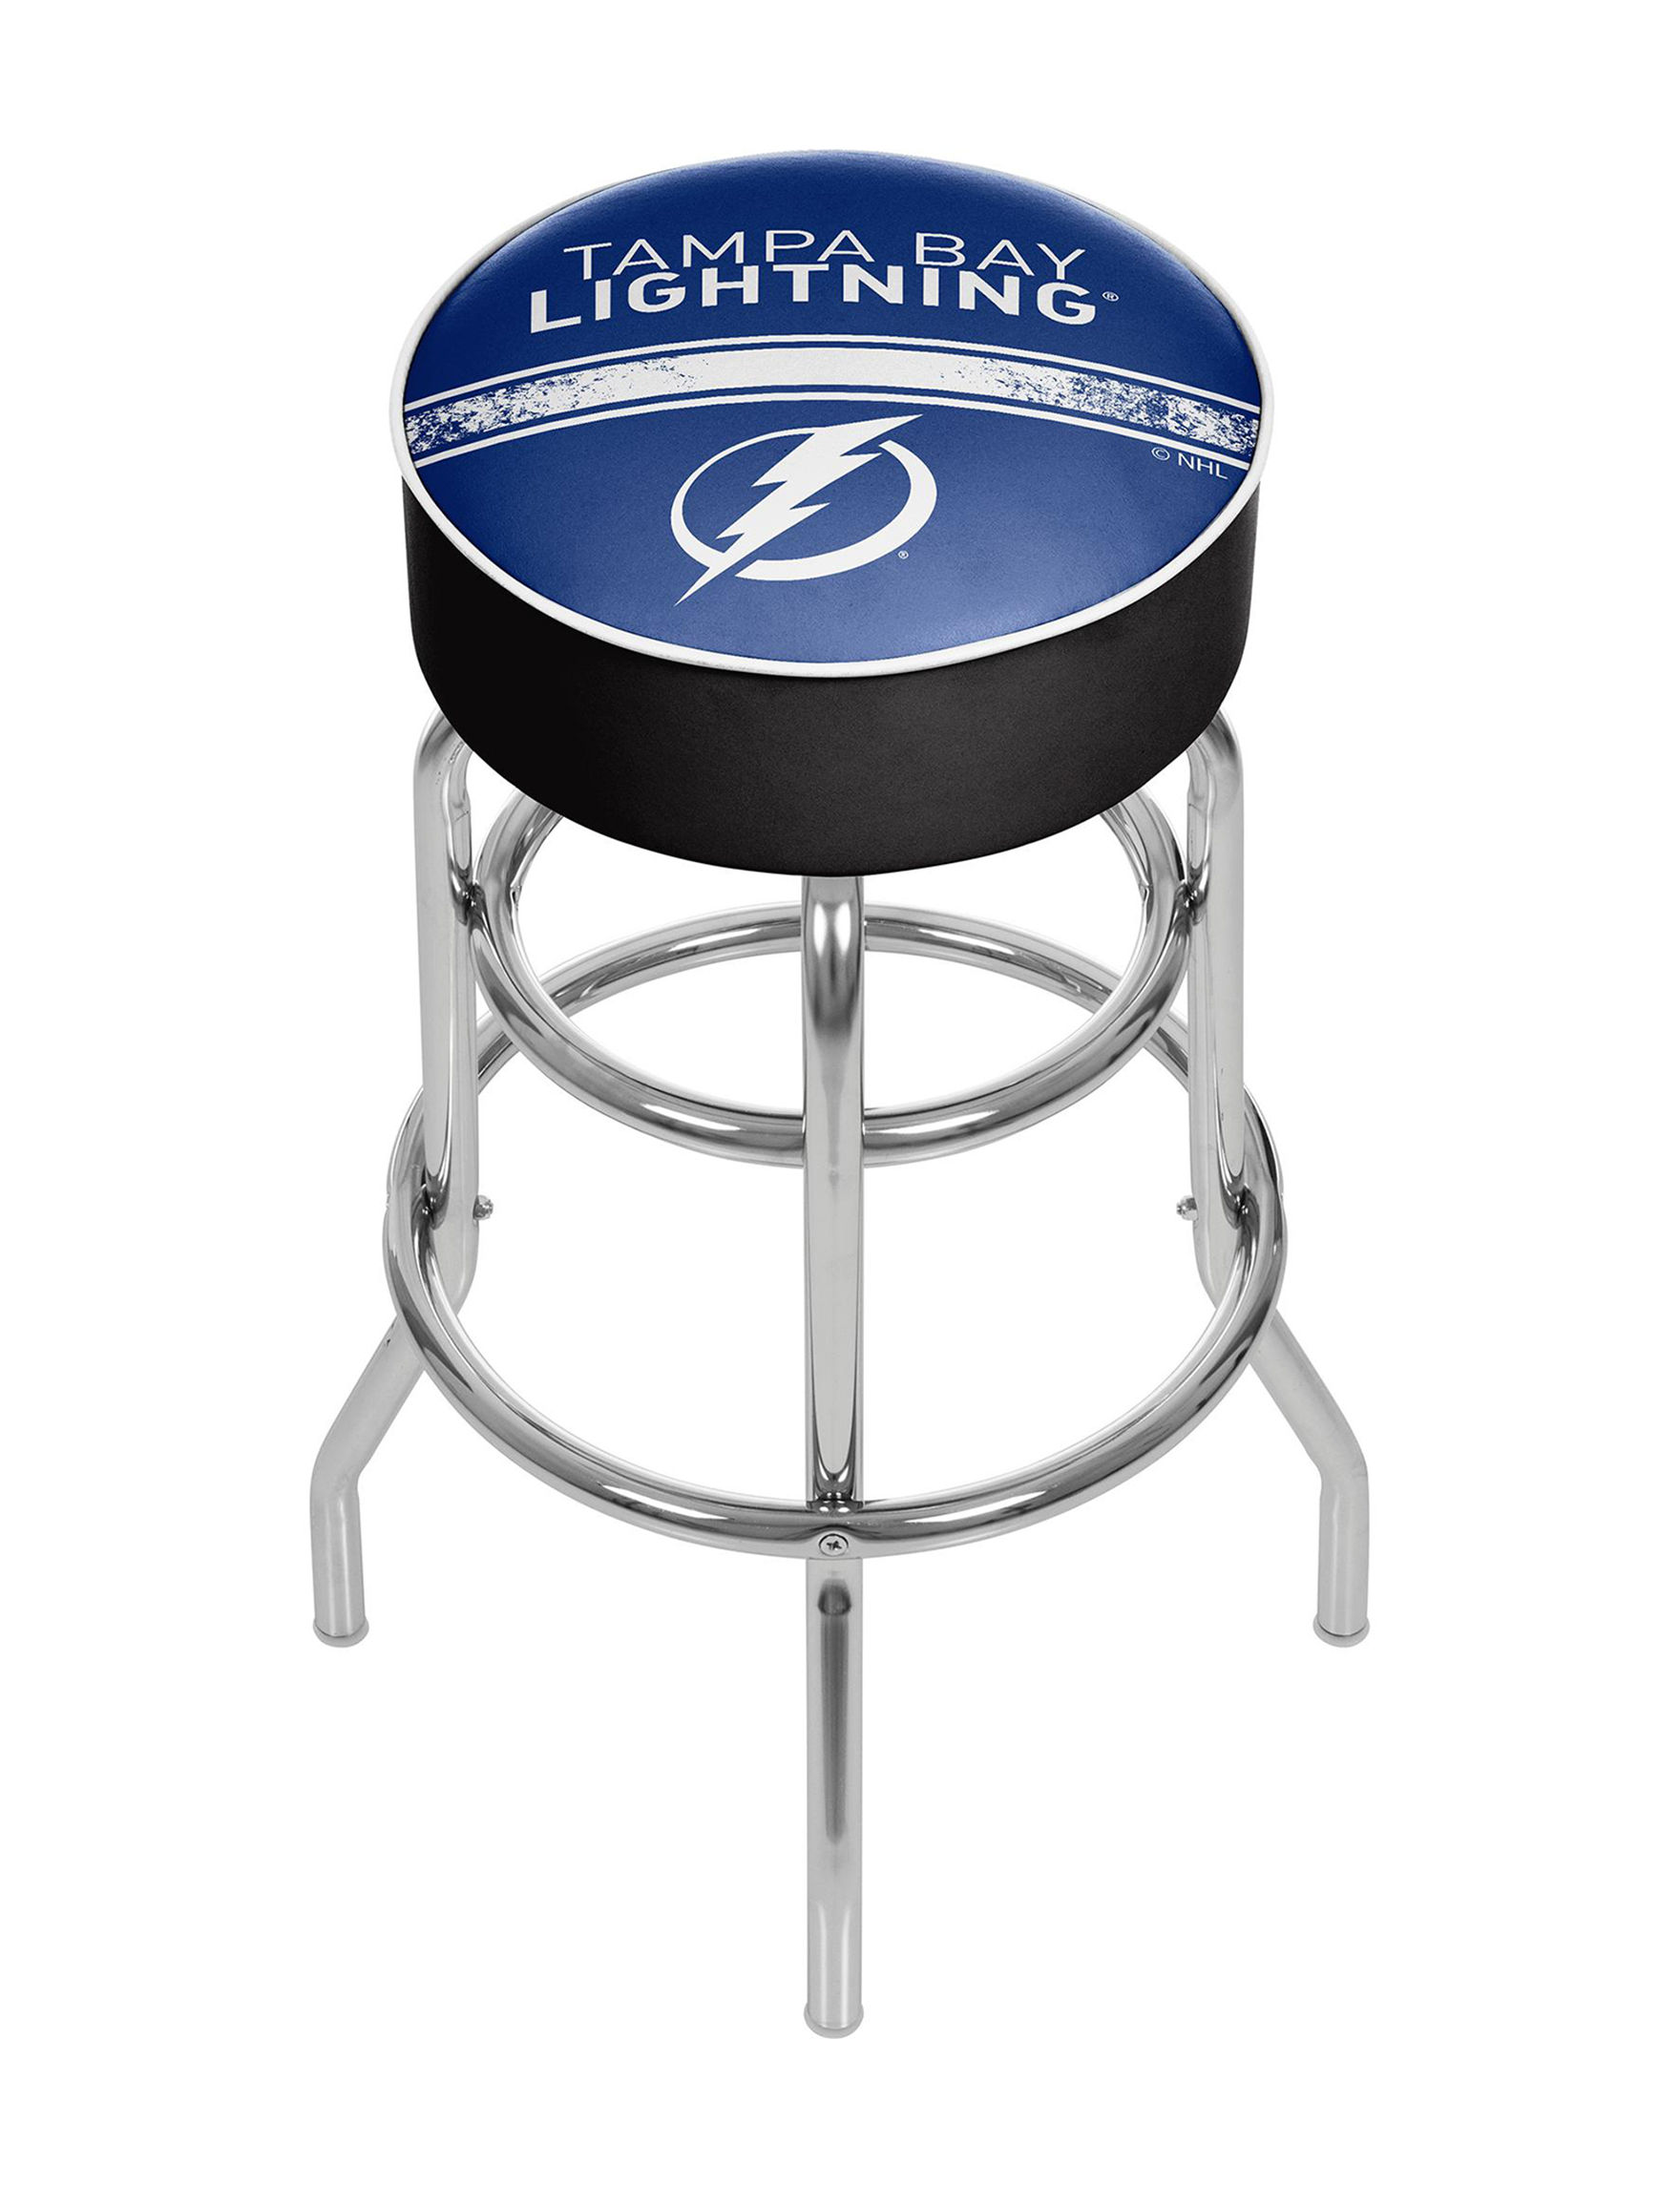 NHL Tampa Bay Lightning Swivel Bar Stool Stage Stores : HG 358626 SI 243473 Bzm from www.stage.com size 1760 x 2292 jpeg 239kB